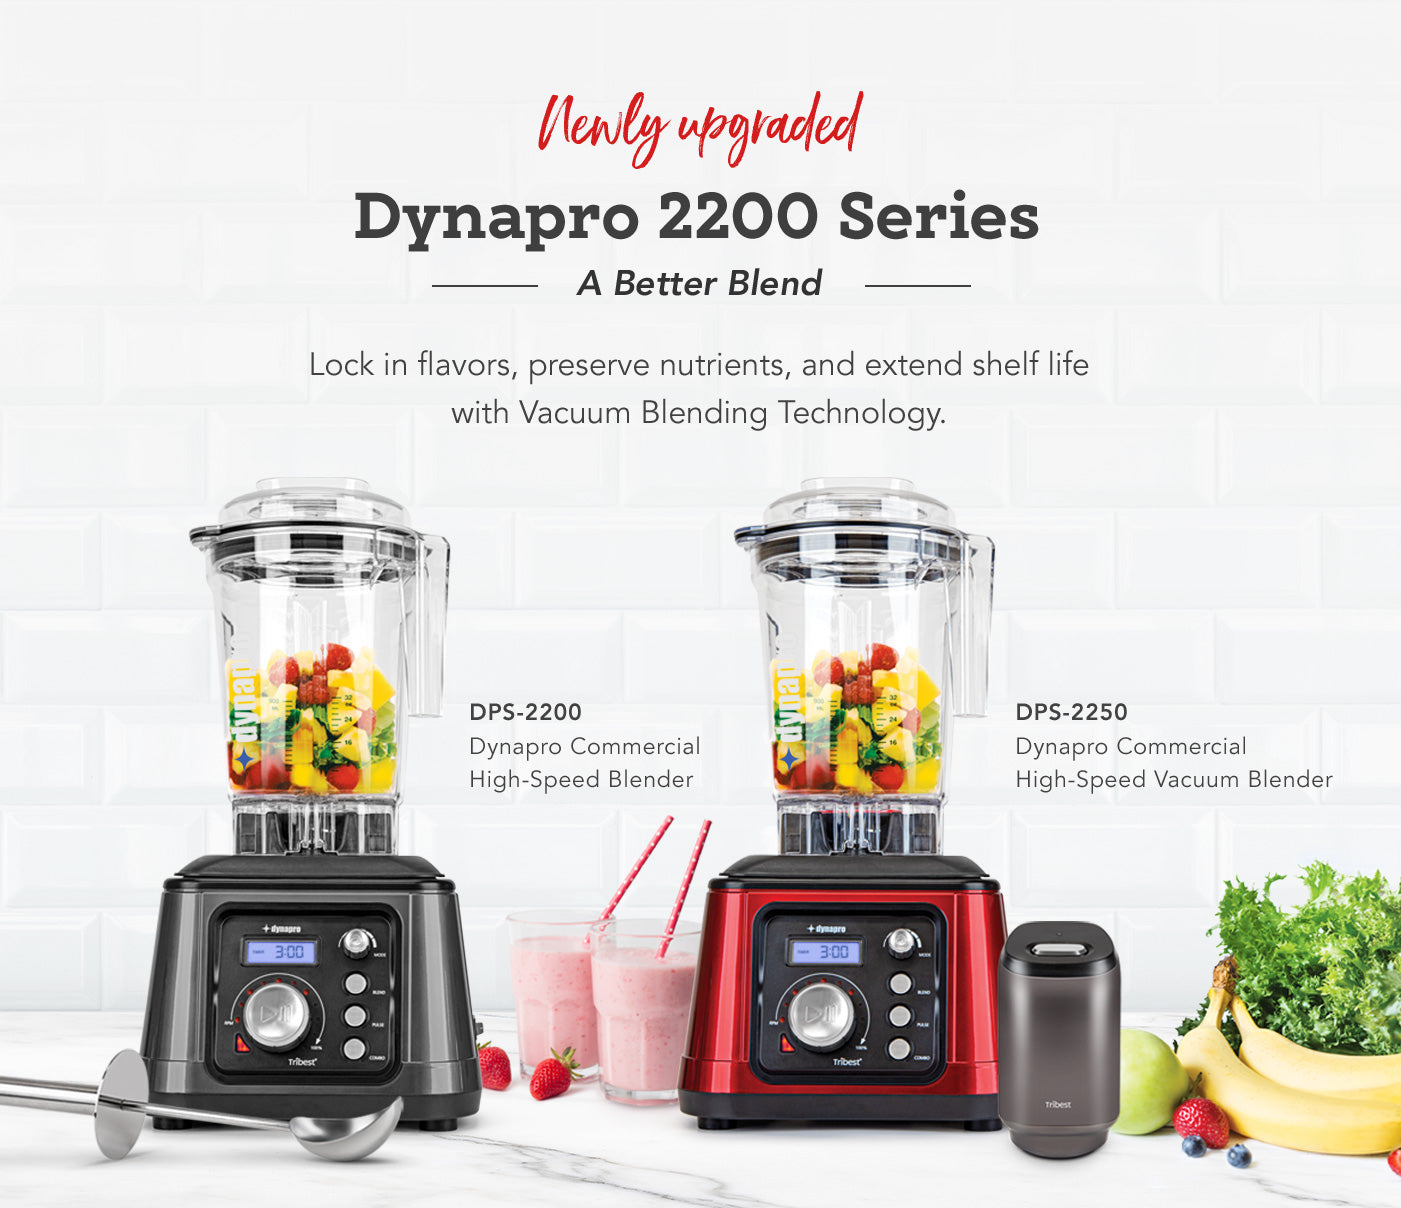 Newly Upgraded Tribest Dynapro 2200 Series - A Better Blend